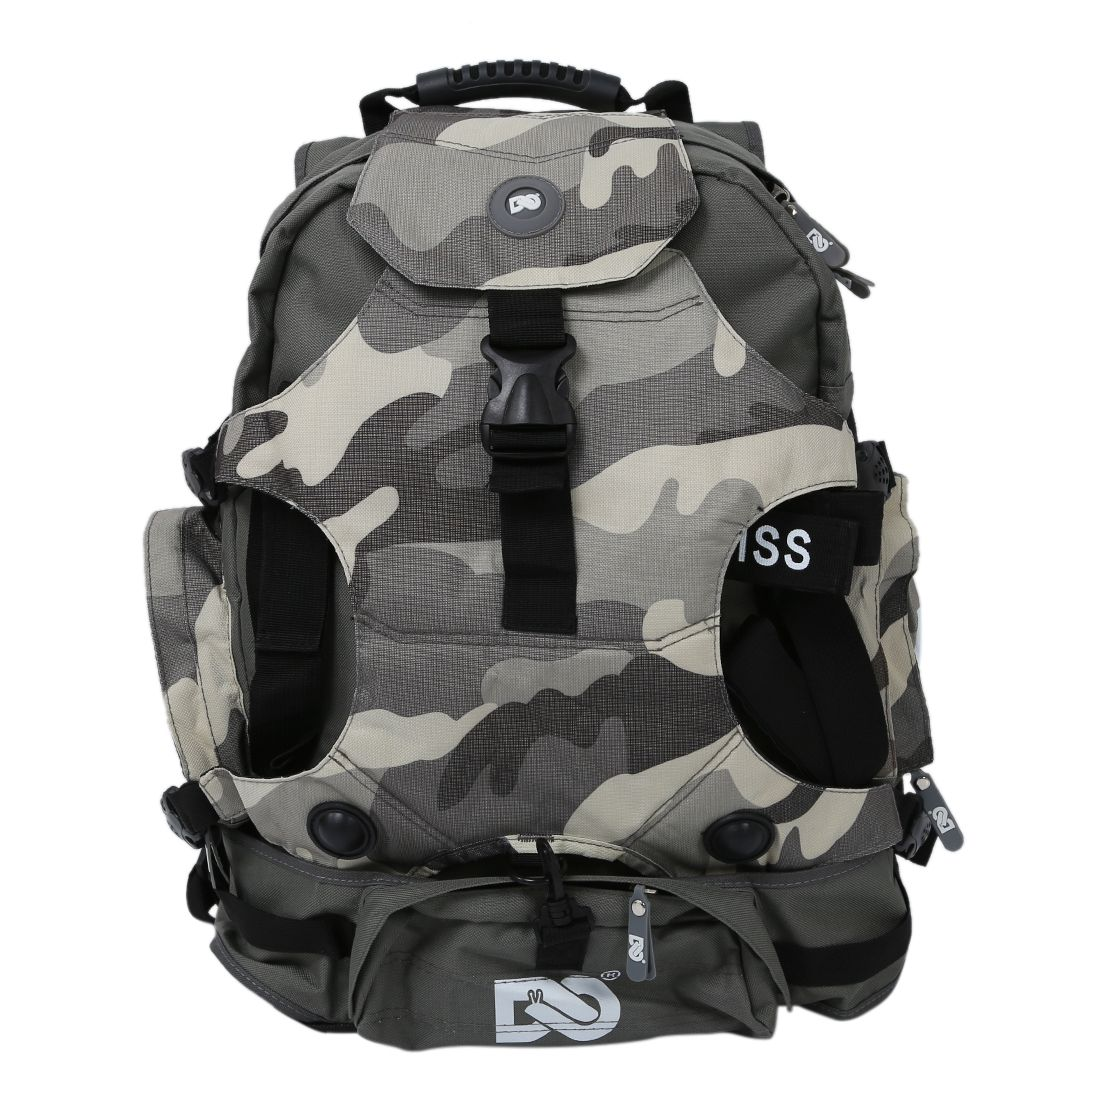 5 X SNNY NEWBRAND Camo Carrying Case Backpack Bag For DJI INSPIRE 1 Quadcopter